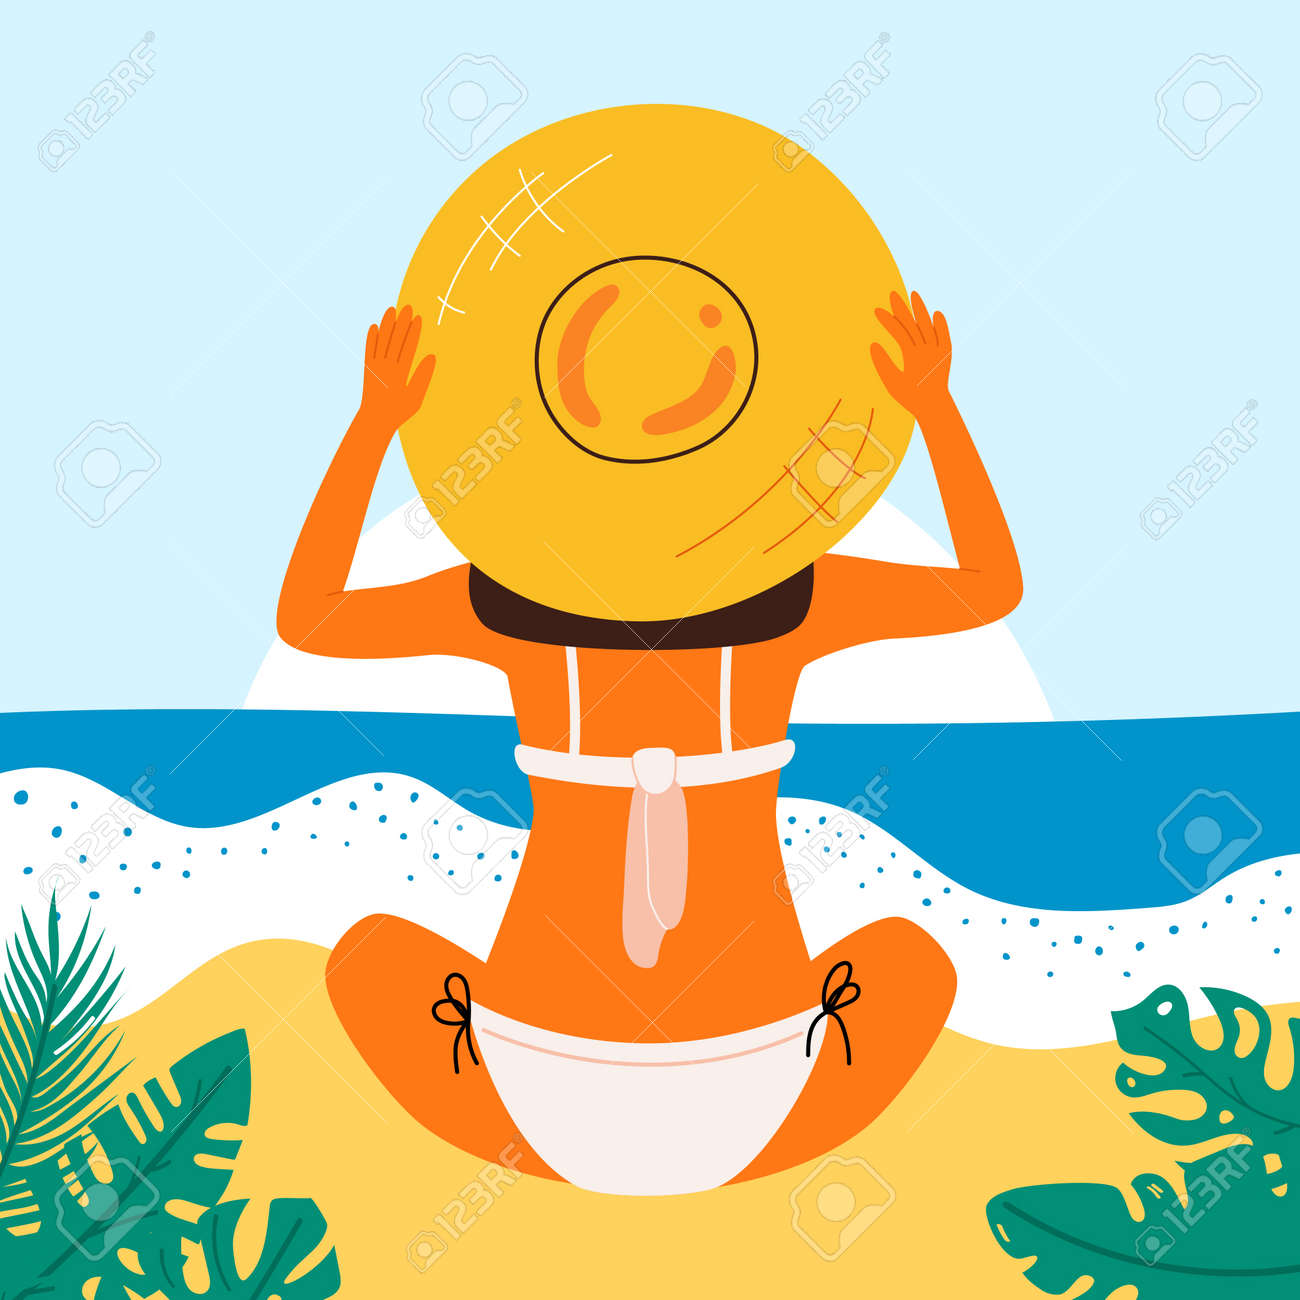 Retro summer poster with a beautiful woman. Great banner for beach party, hotel vacation advertisement. Summer background. Vector. - 169772202